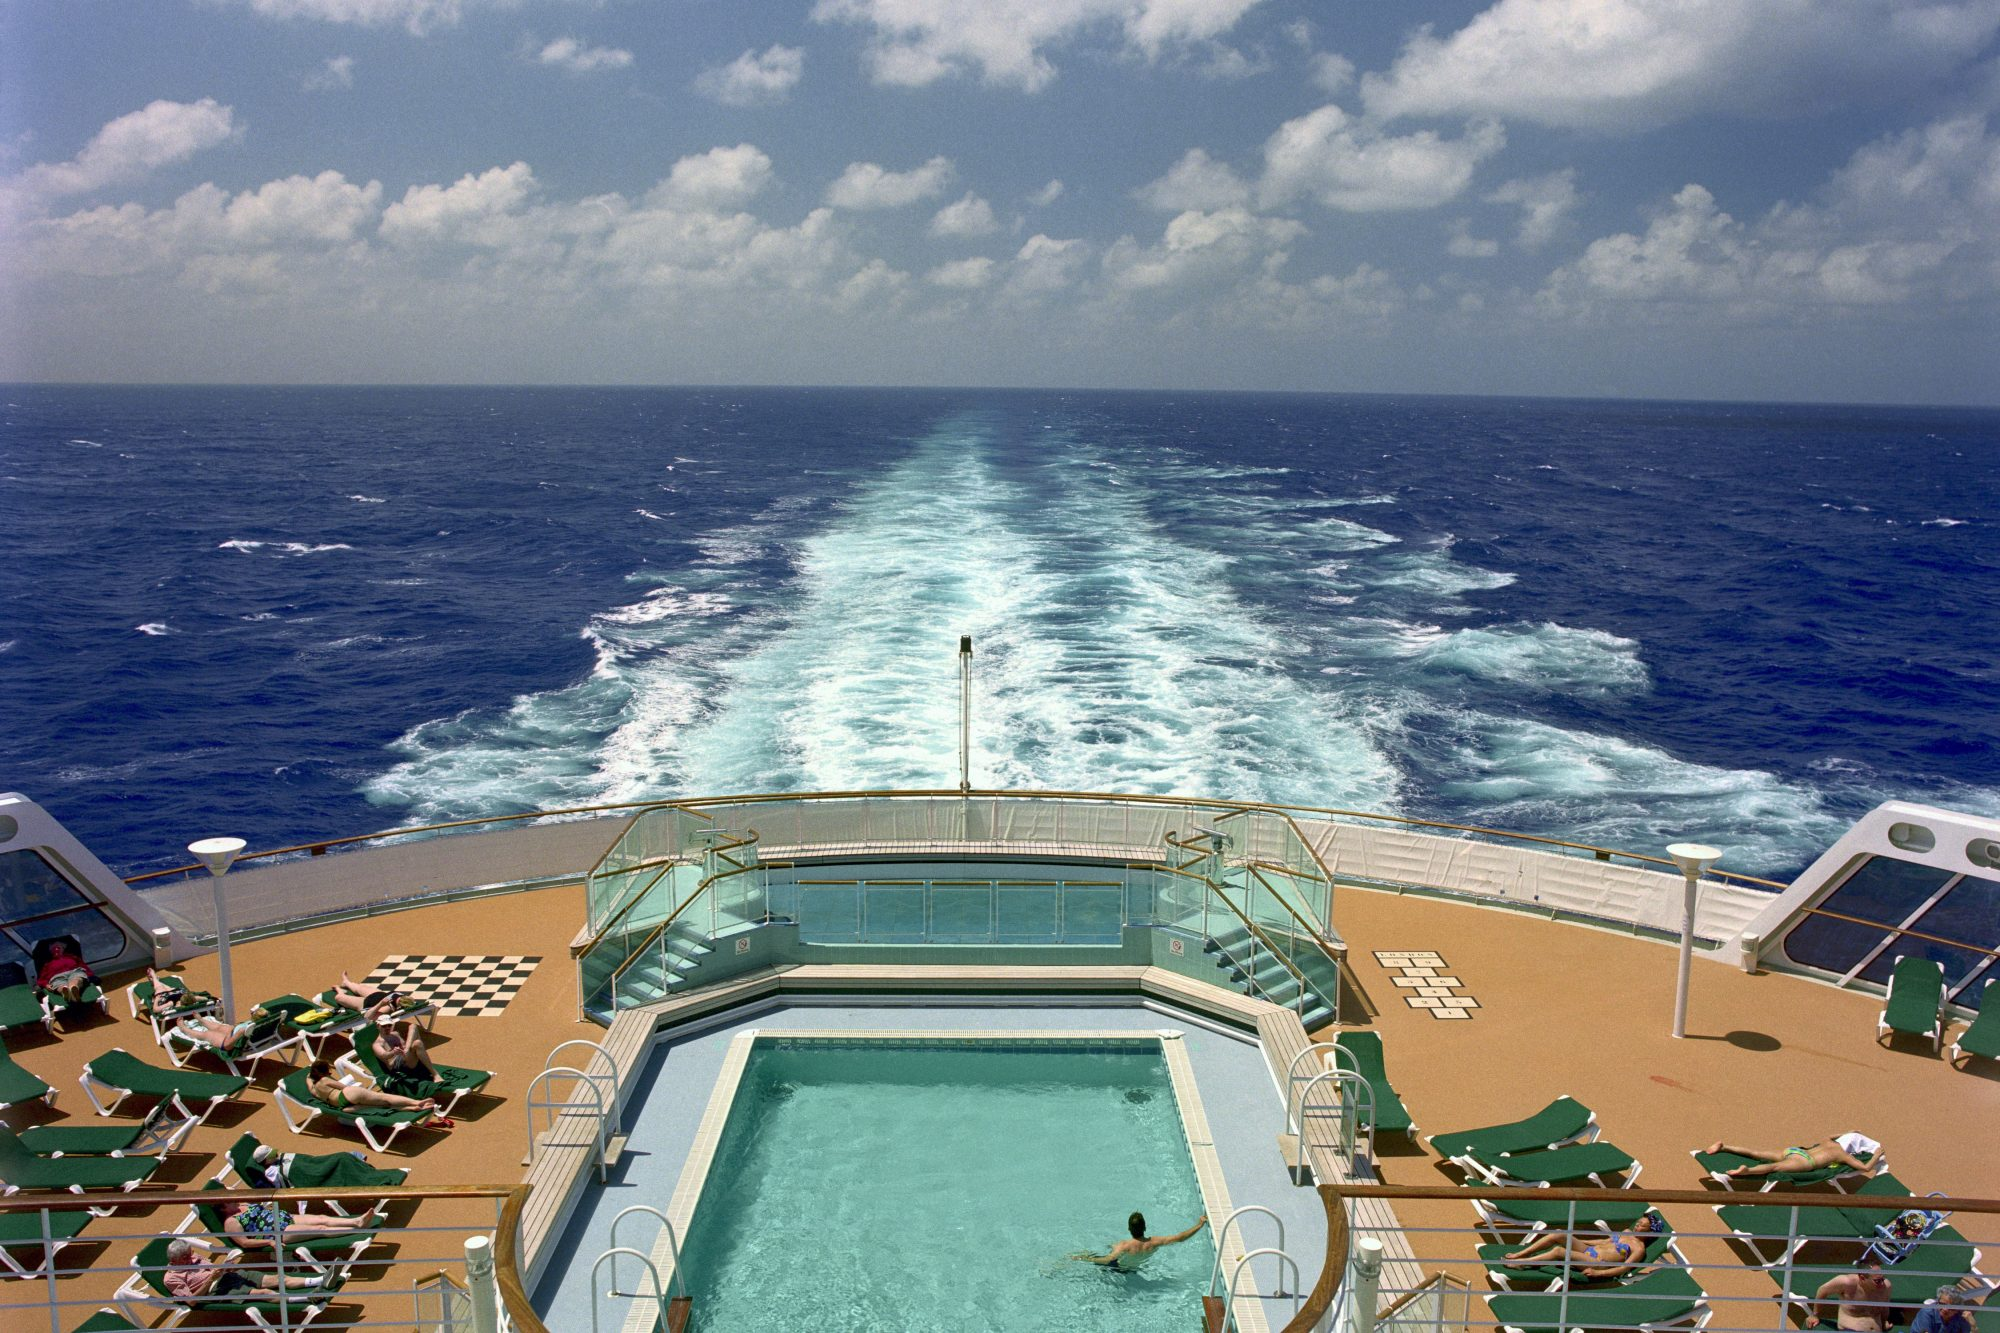 11 Things You Should Always Pack for a Cruise